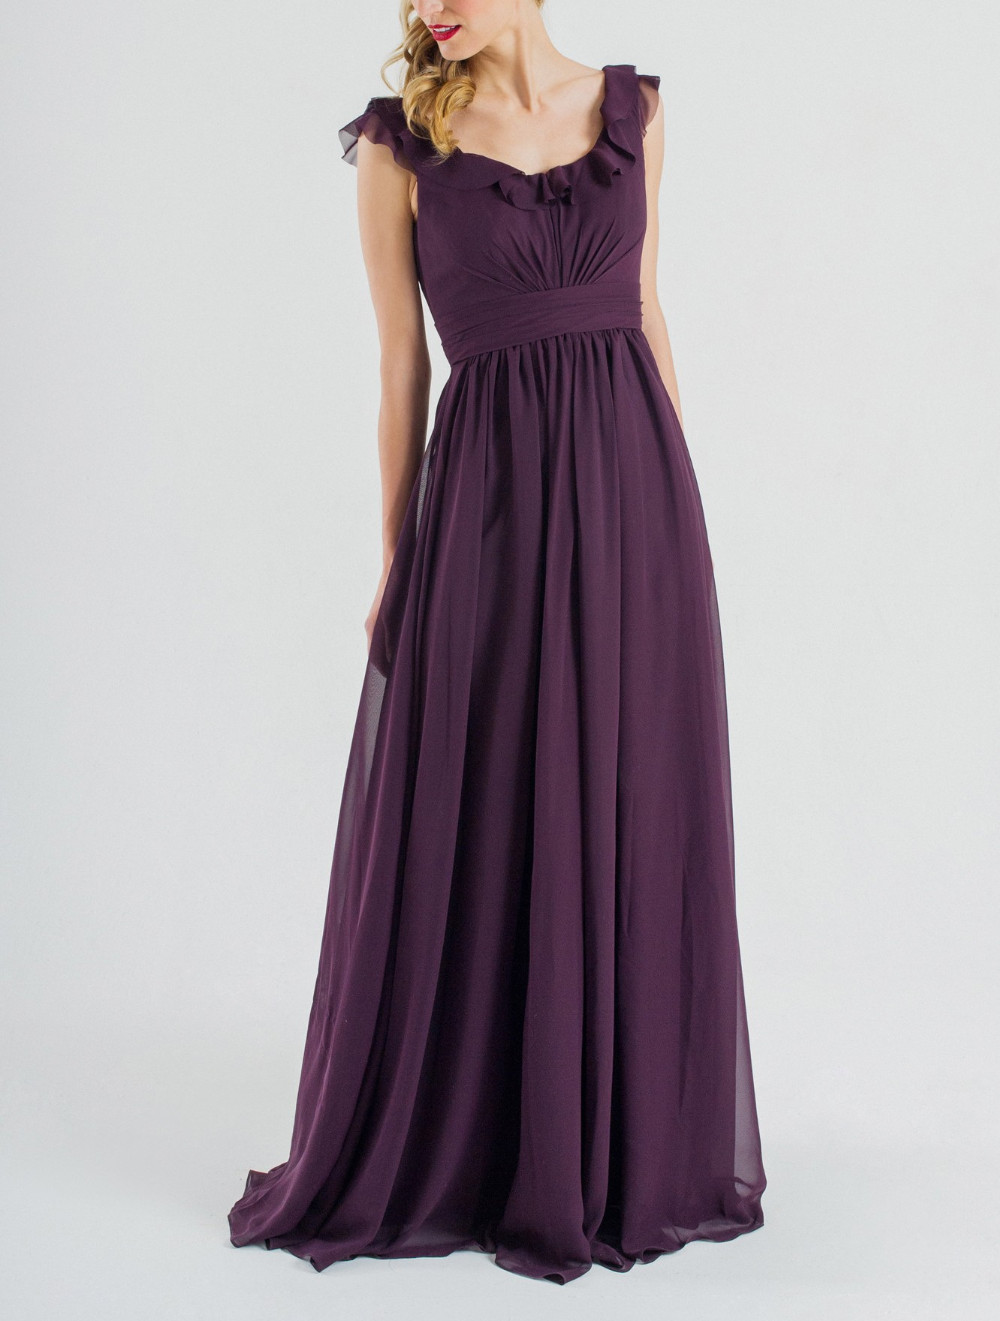 2016 elegant cheap purple scoop neck bridesmaid dresses for Cheap chiffon wedding dresses